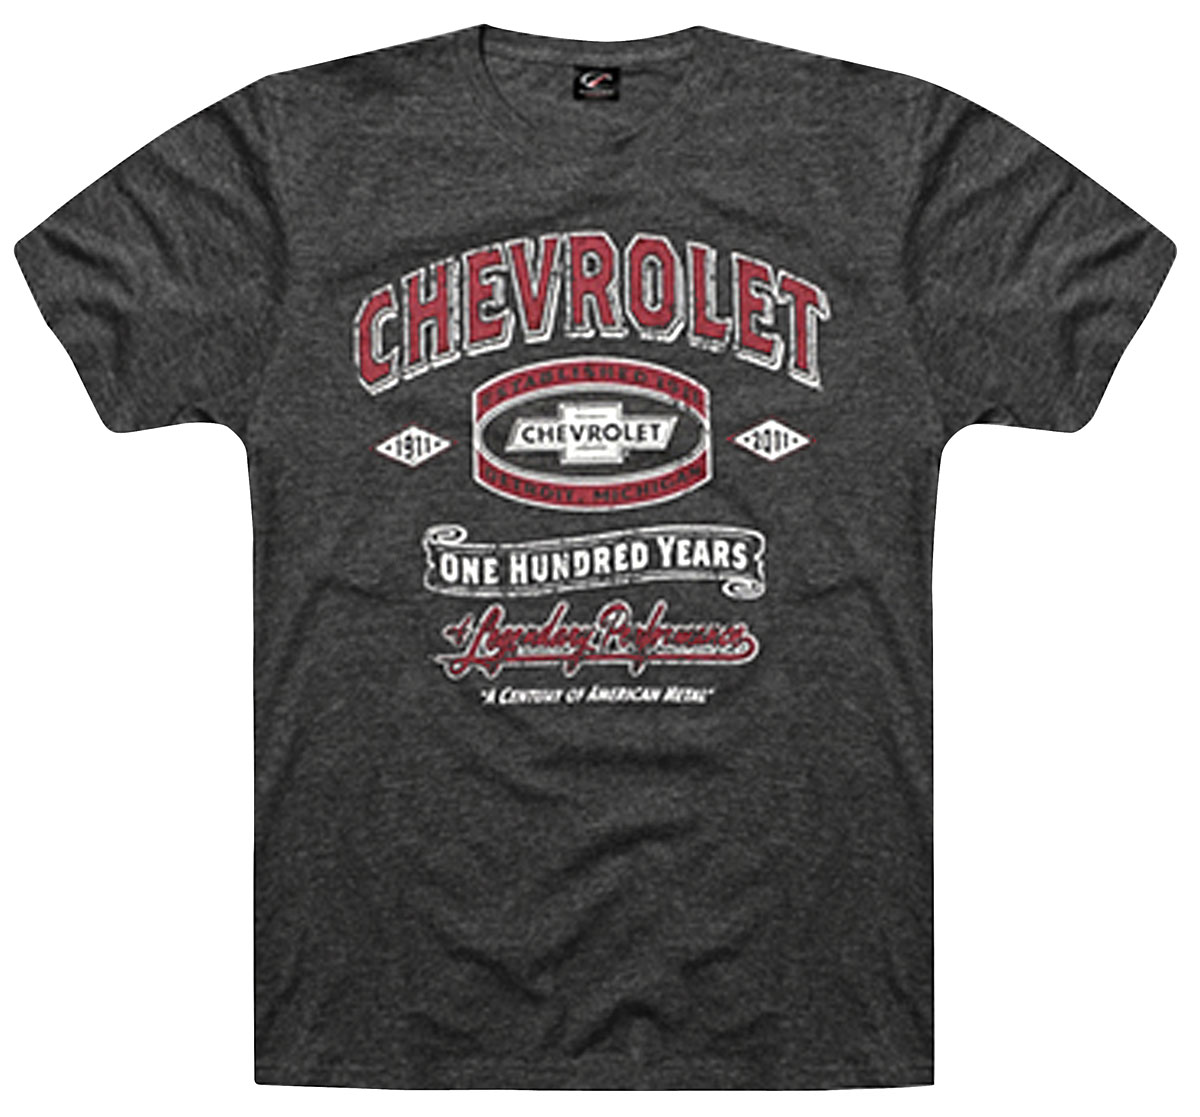 Photo of Chevrolet 100 Year Anniversary Shirt